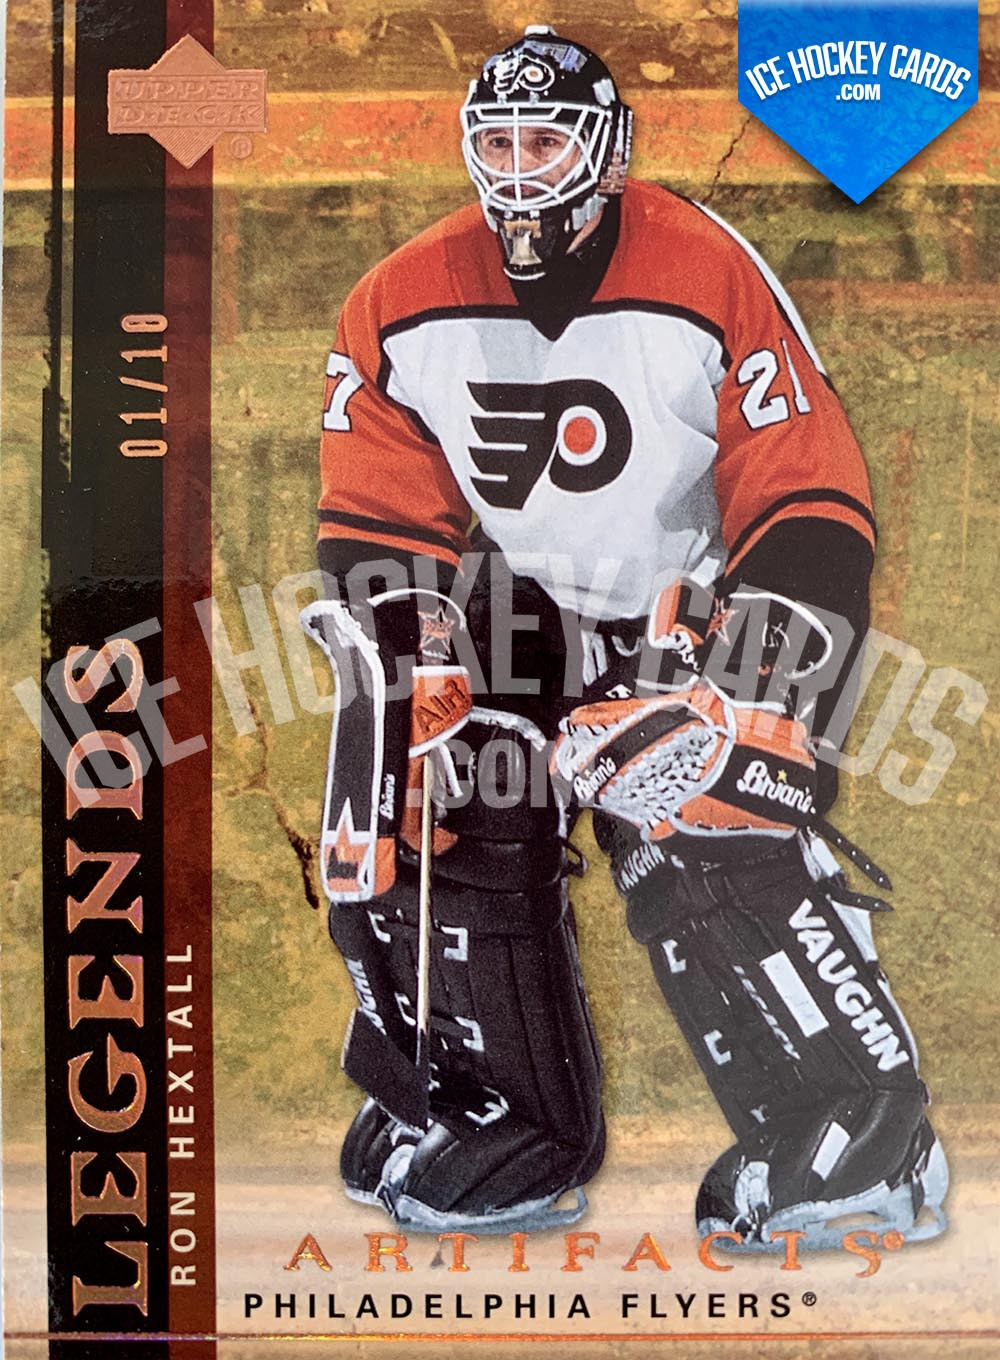 Upper Deck - Artifacts 2007-08 - Ron Hextall Legends Card # to 10 RARE